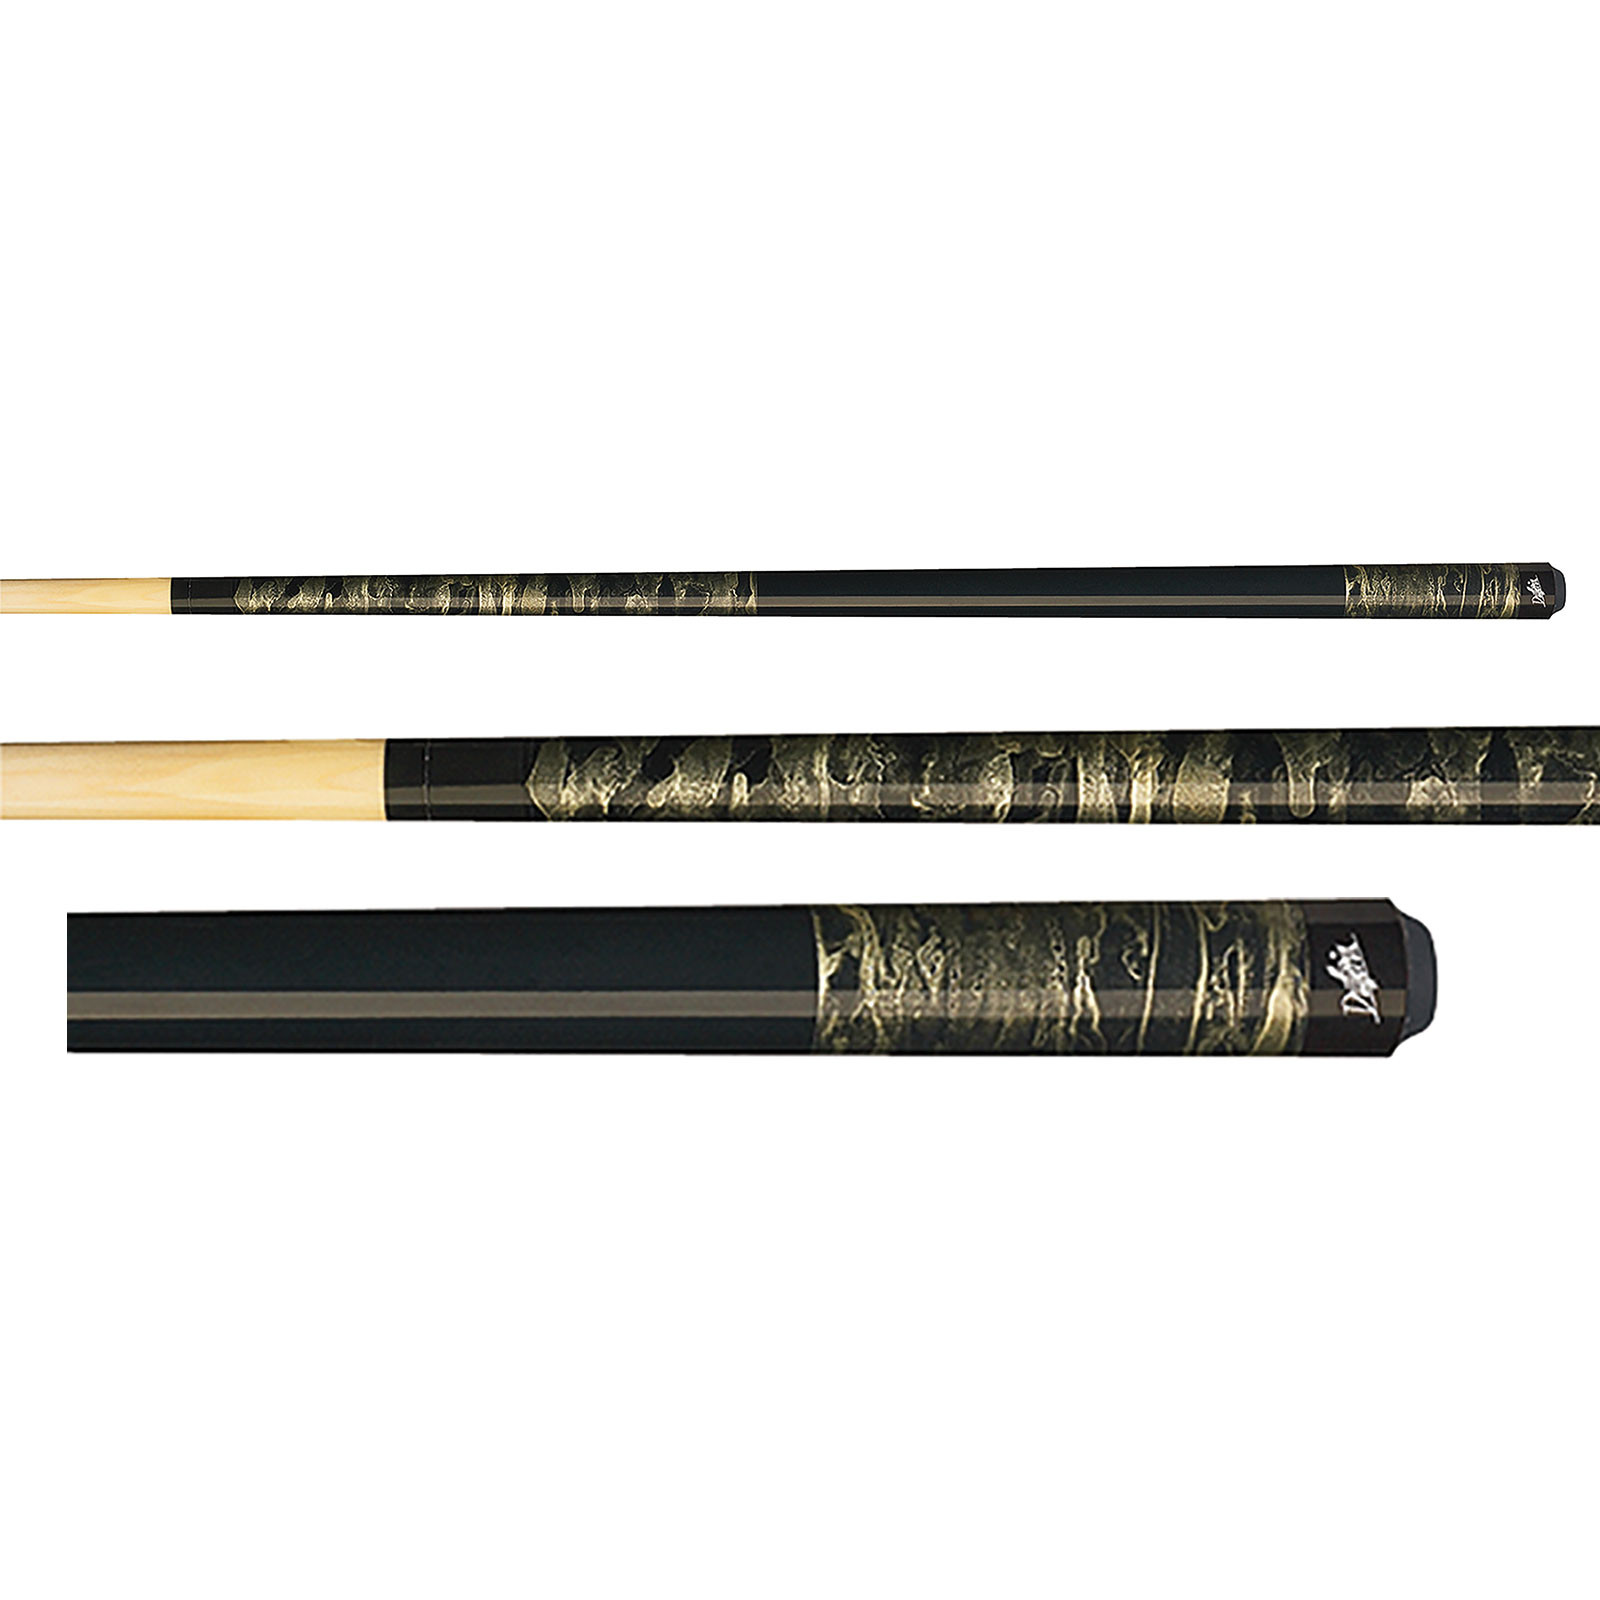 Dufferin D-201 Marbled Silver Dream Pool Cue Stick